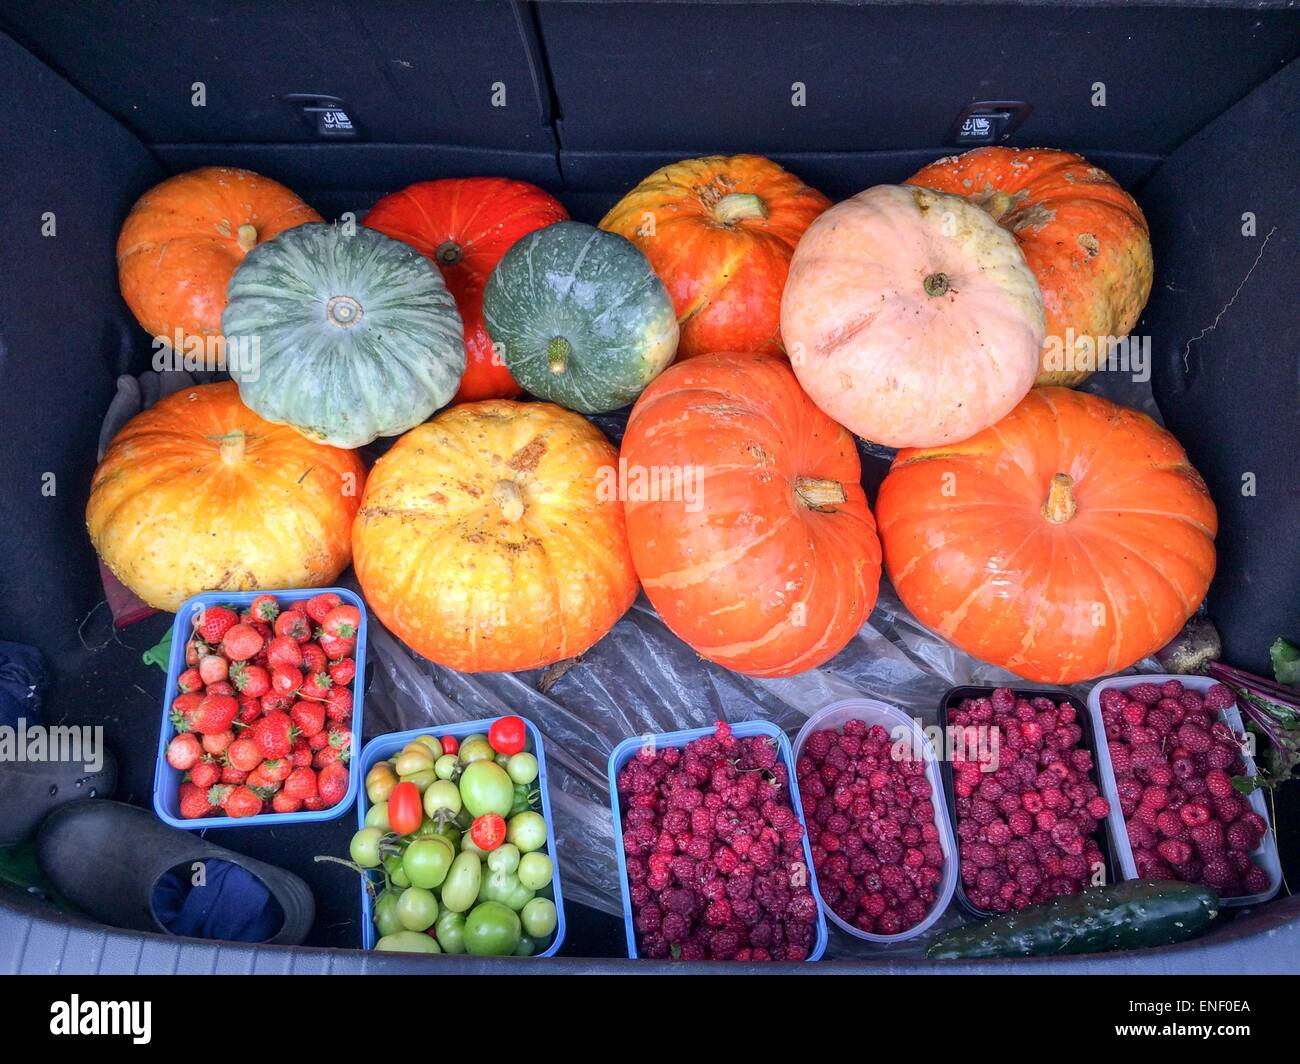 Fruit and pumpkins in car boot harvested from allotment in autumn - Stock Image